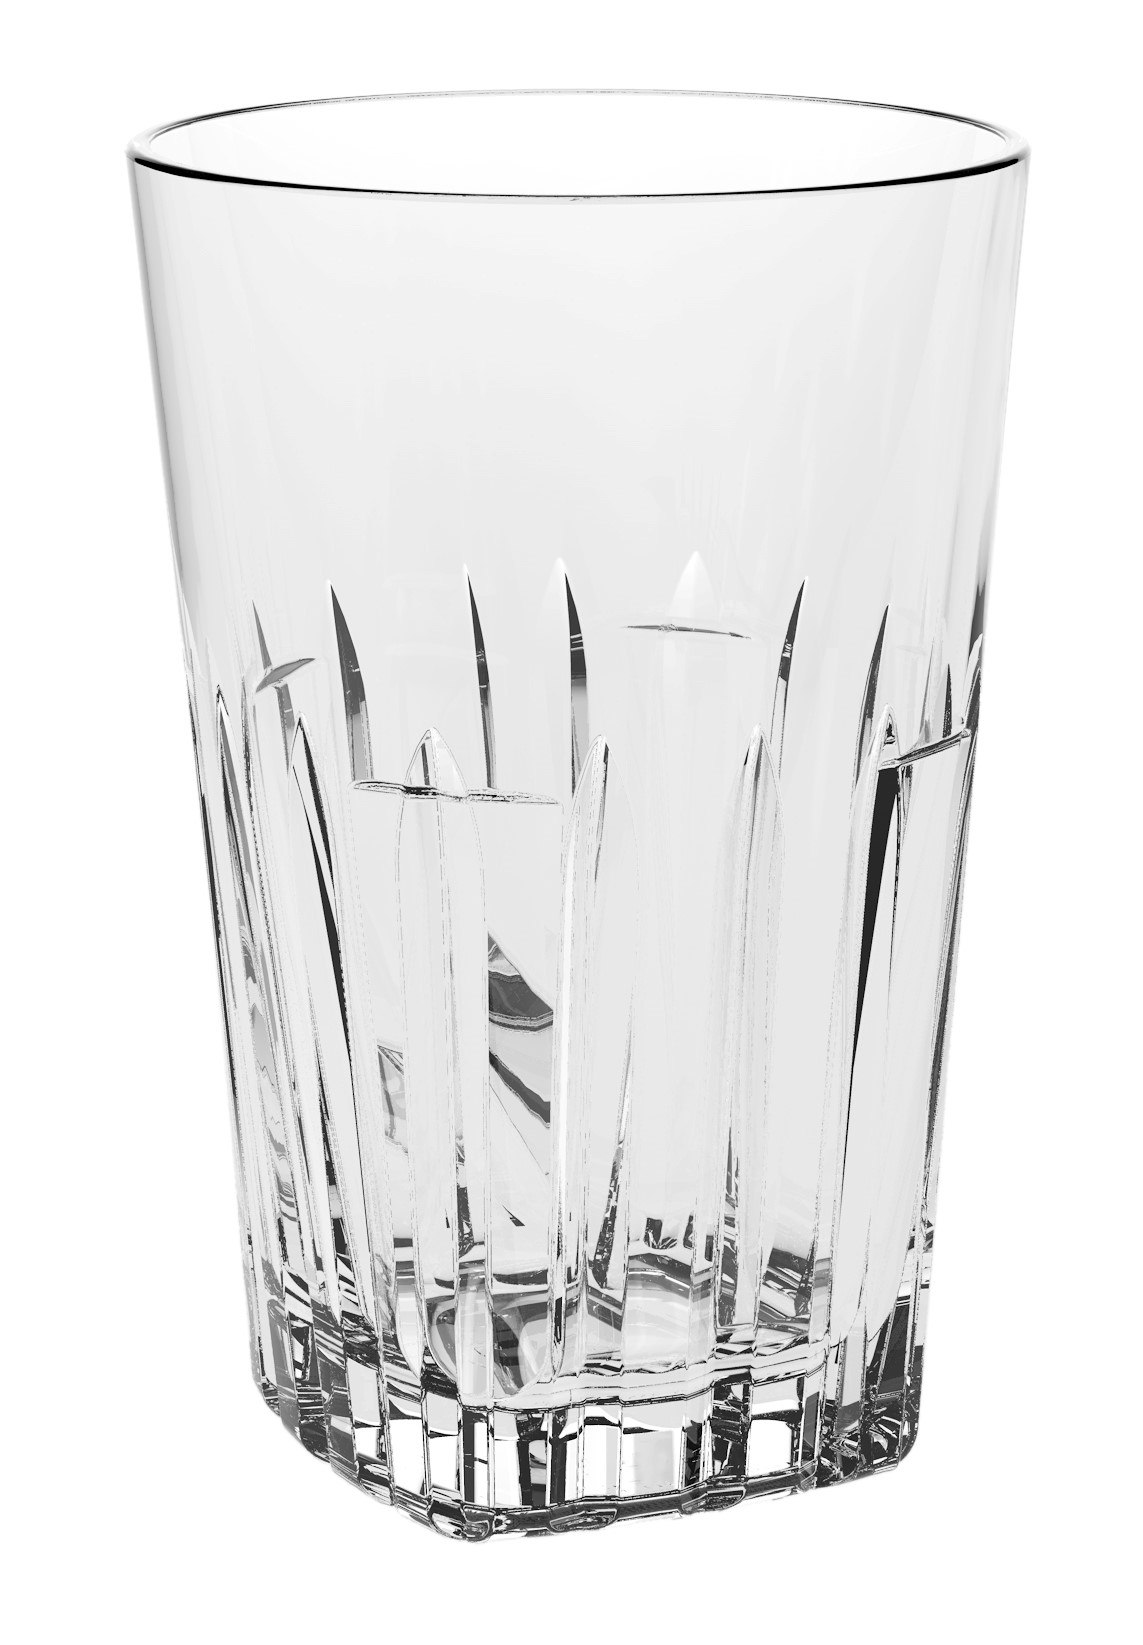 Product picture of Stepback Drinking Glass Collection